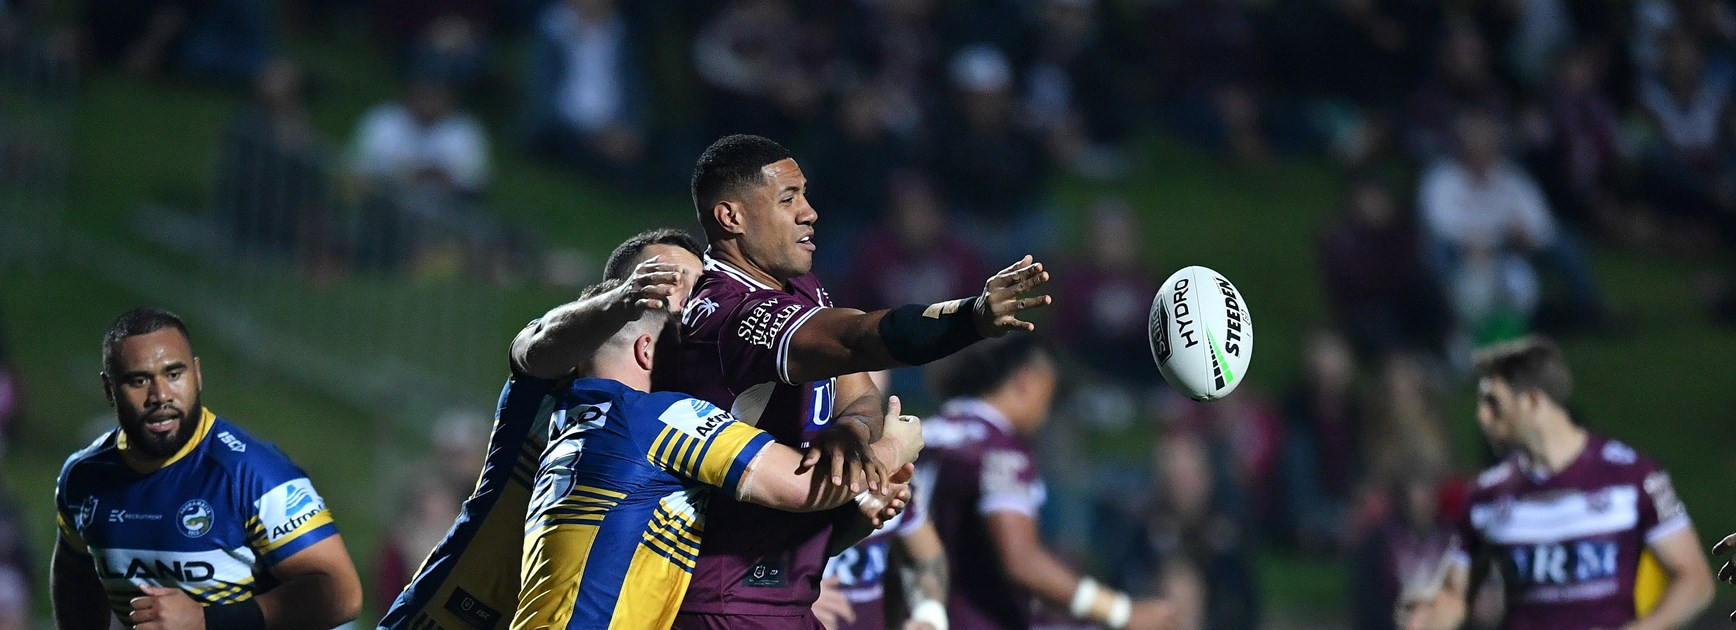 Sea Eagles record solid win over Eels at Lottoland